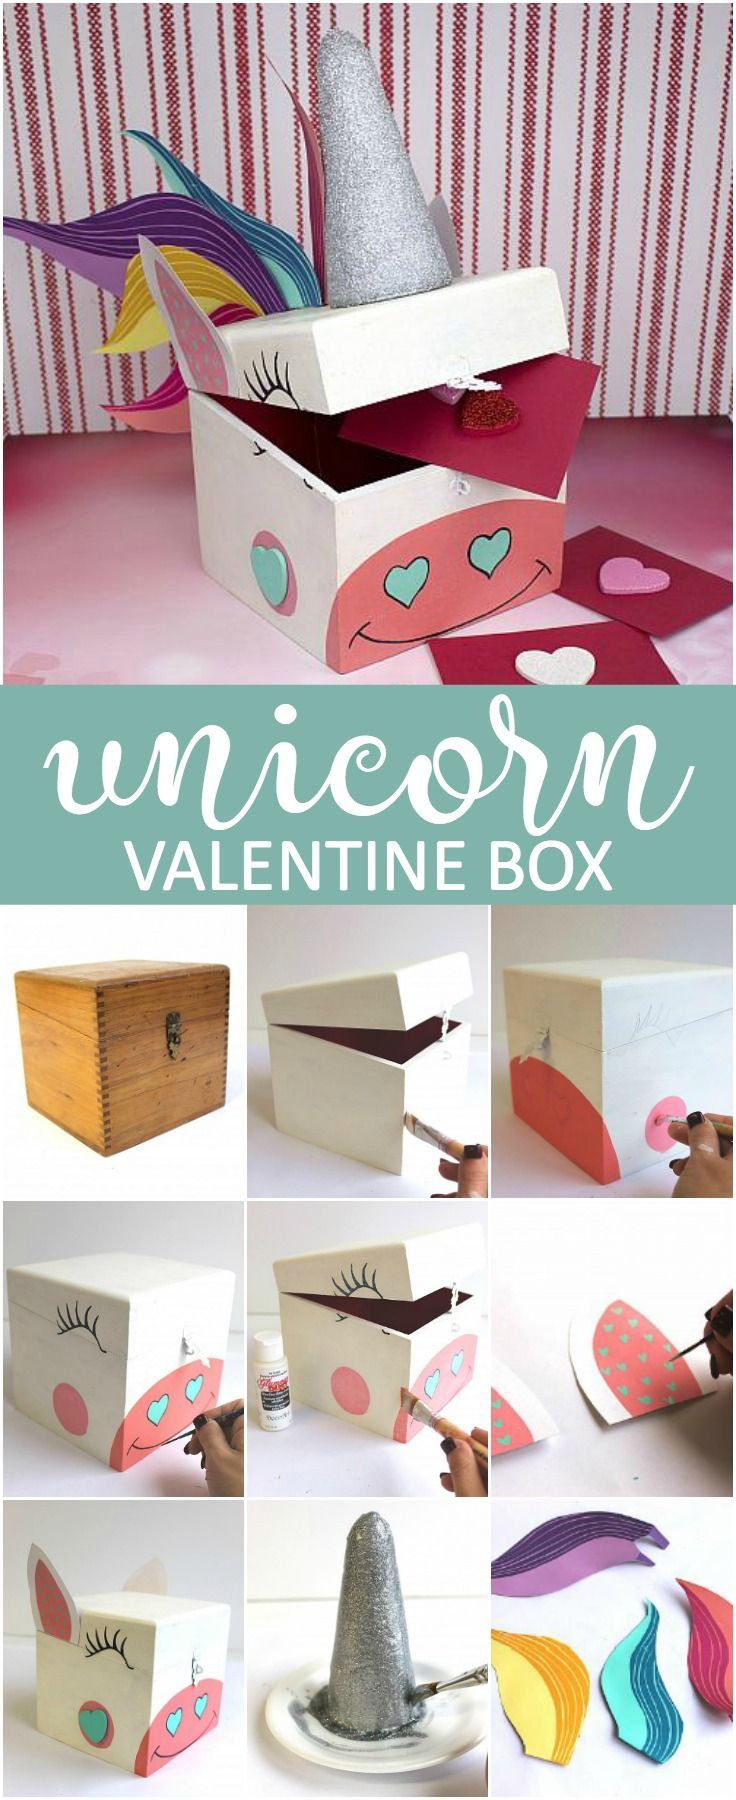 Create this project with Americana® Acrylics — Store those Valentine's cards in this whimsical box made with Americana® Acrylics.